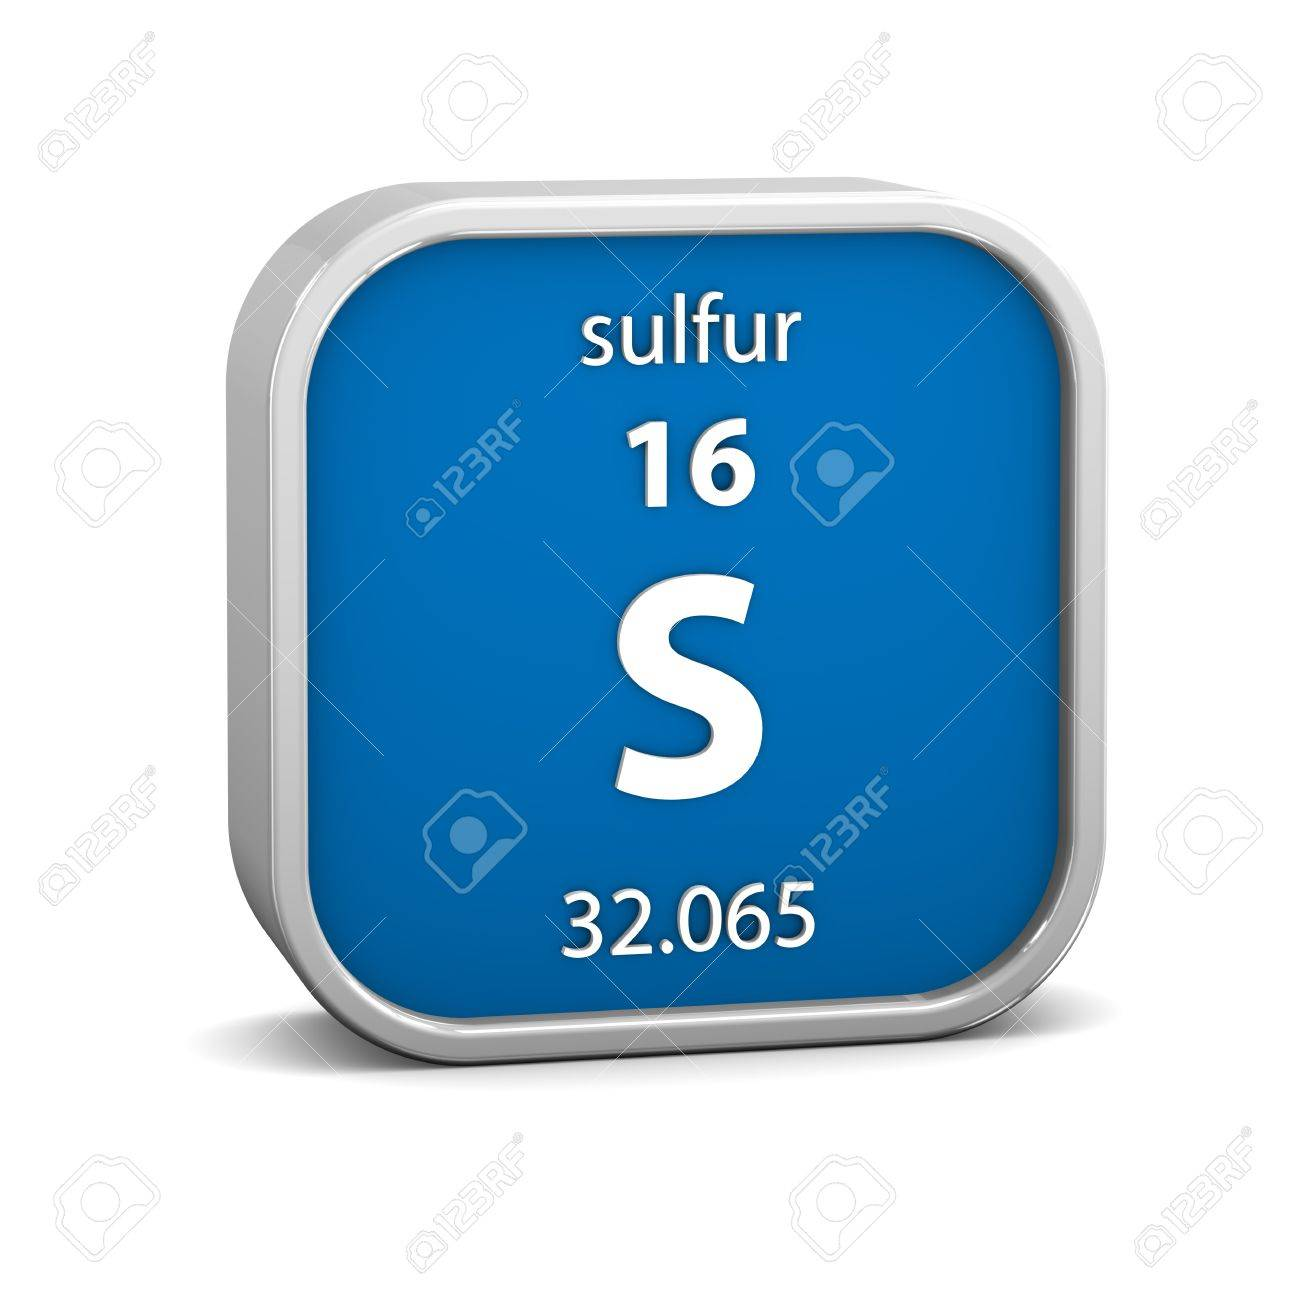 Sulphur symbol periodic table choice image periodic table images sulfur on periodic table choice image periodic table images sulfur on periodic table gallery periodic table gamestrikefo Image collections